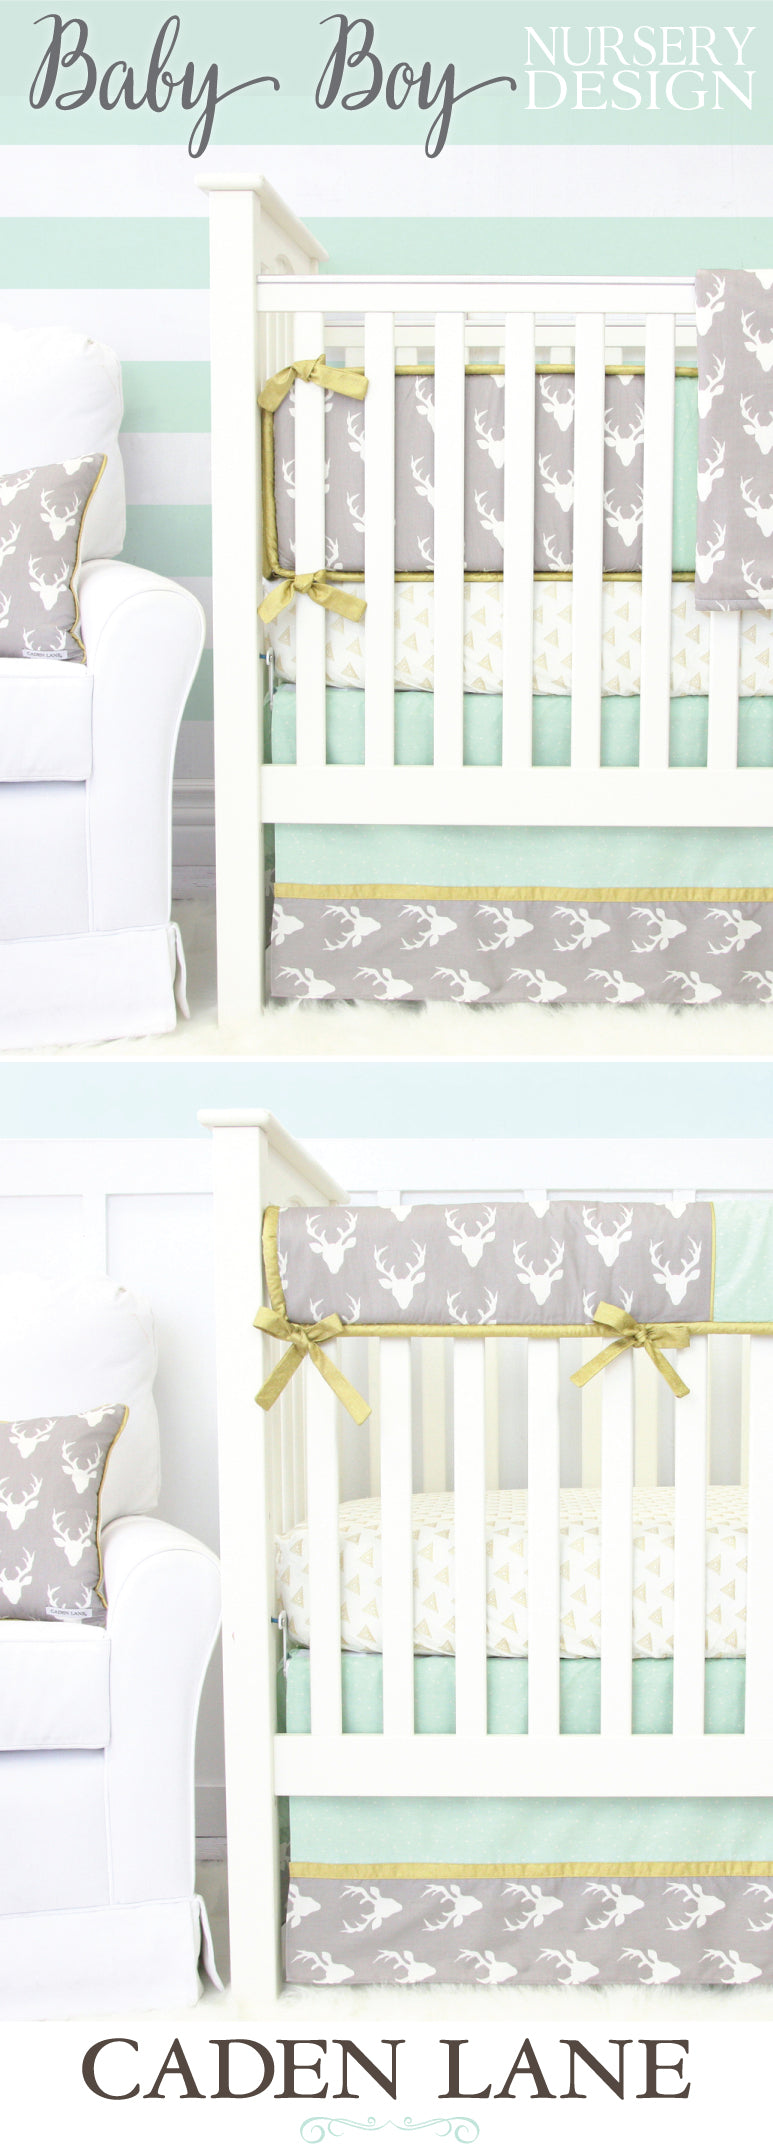 Mint & Gray Woodlands Crib Bedding for a Boy Nursery Design